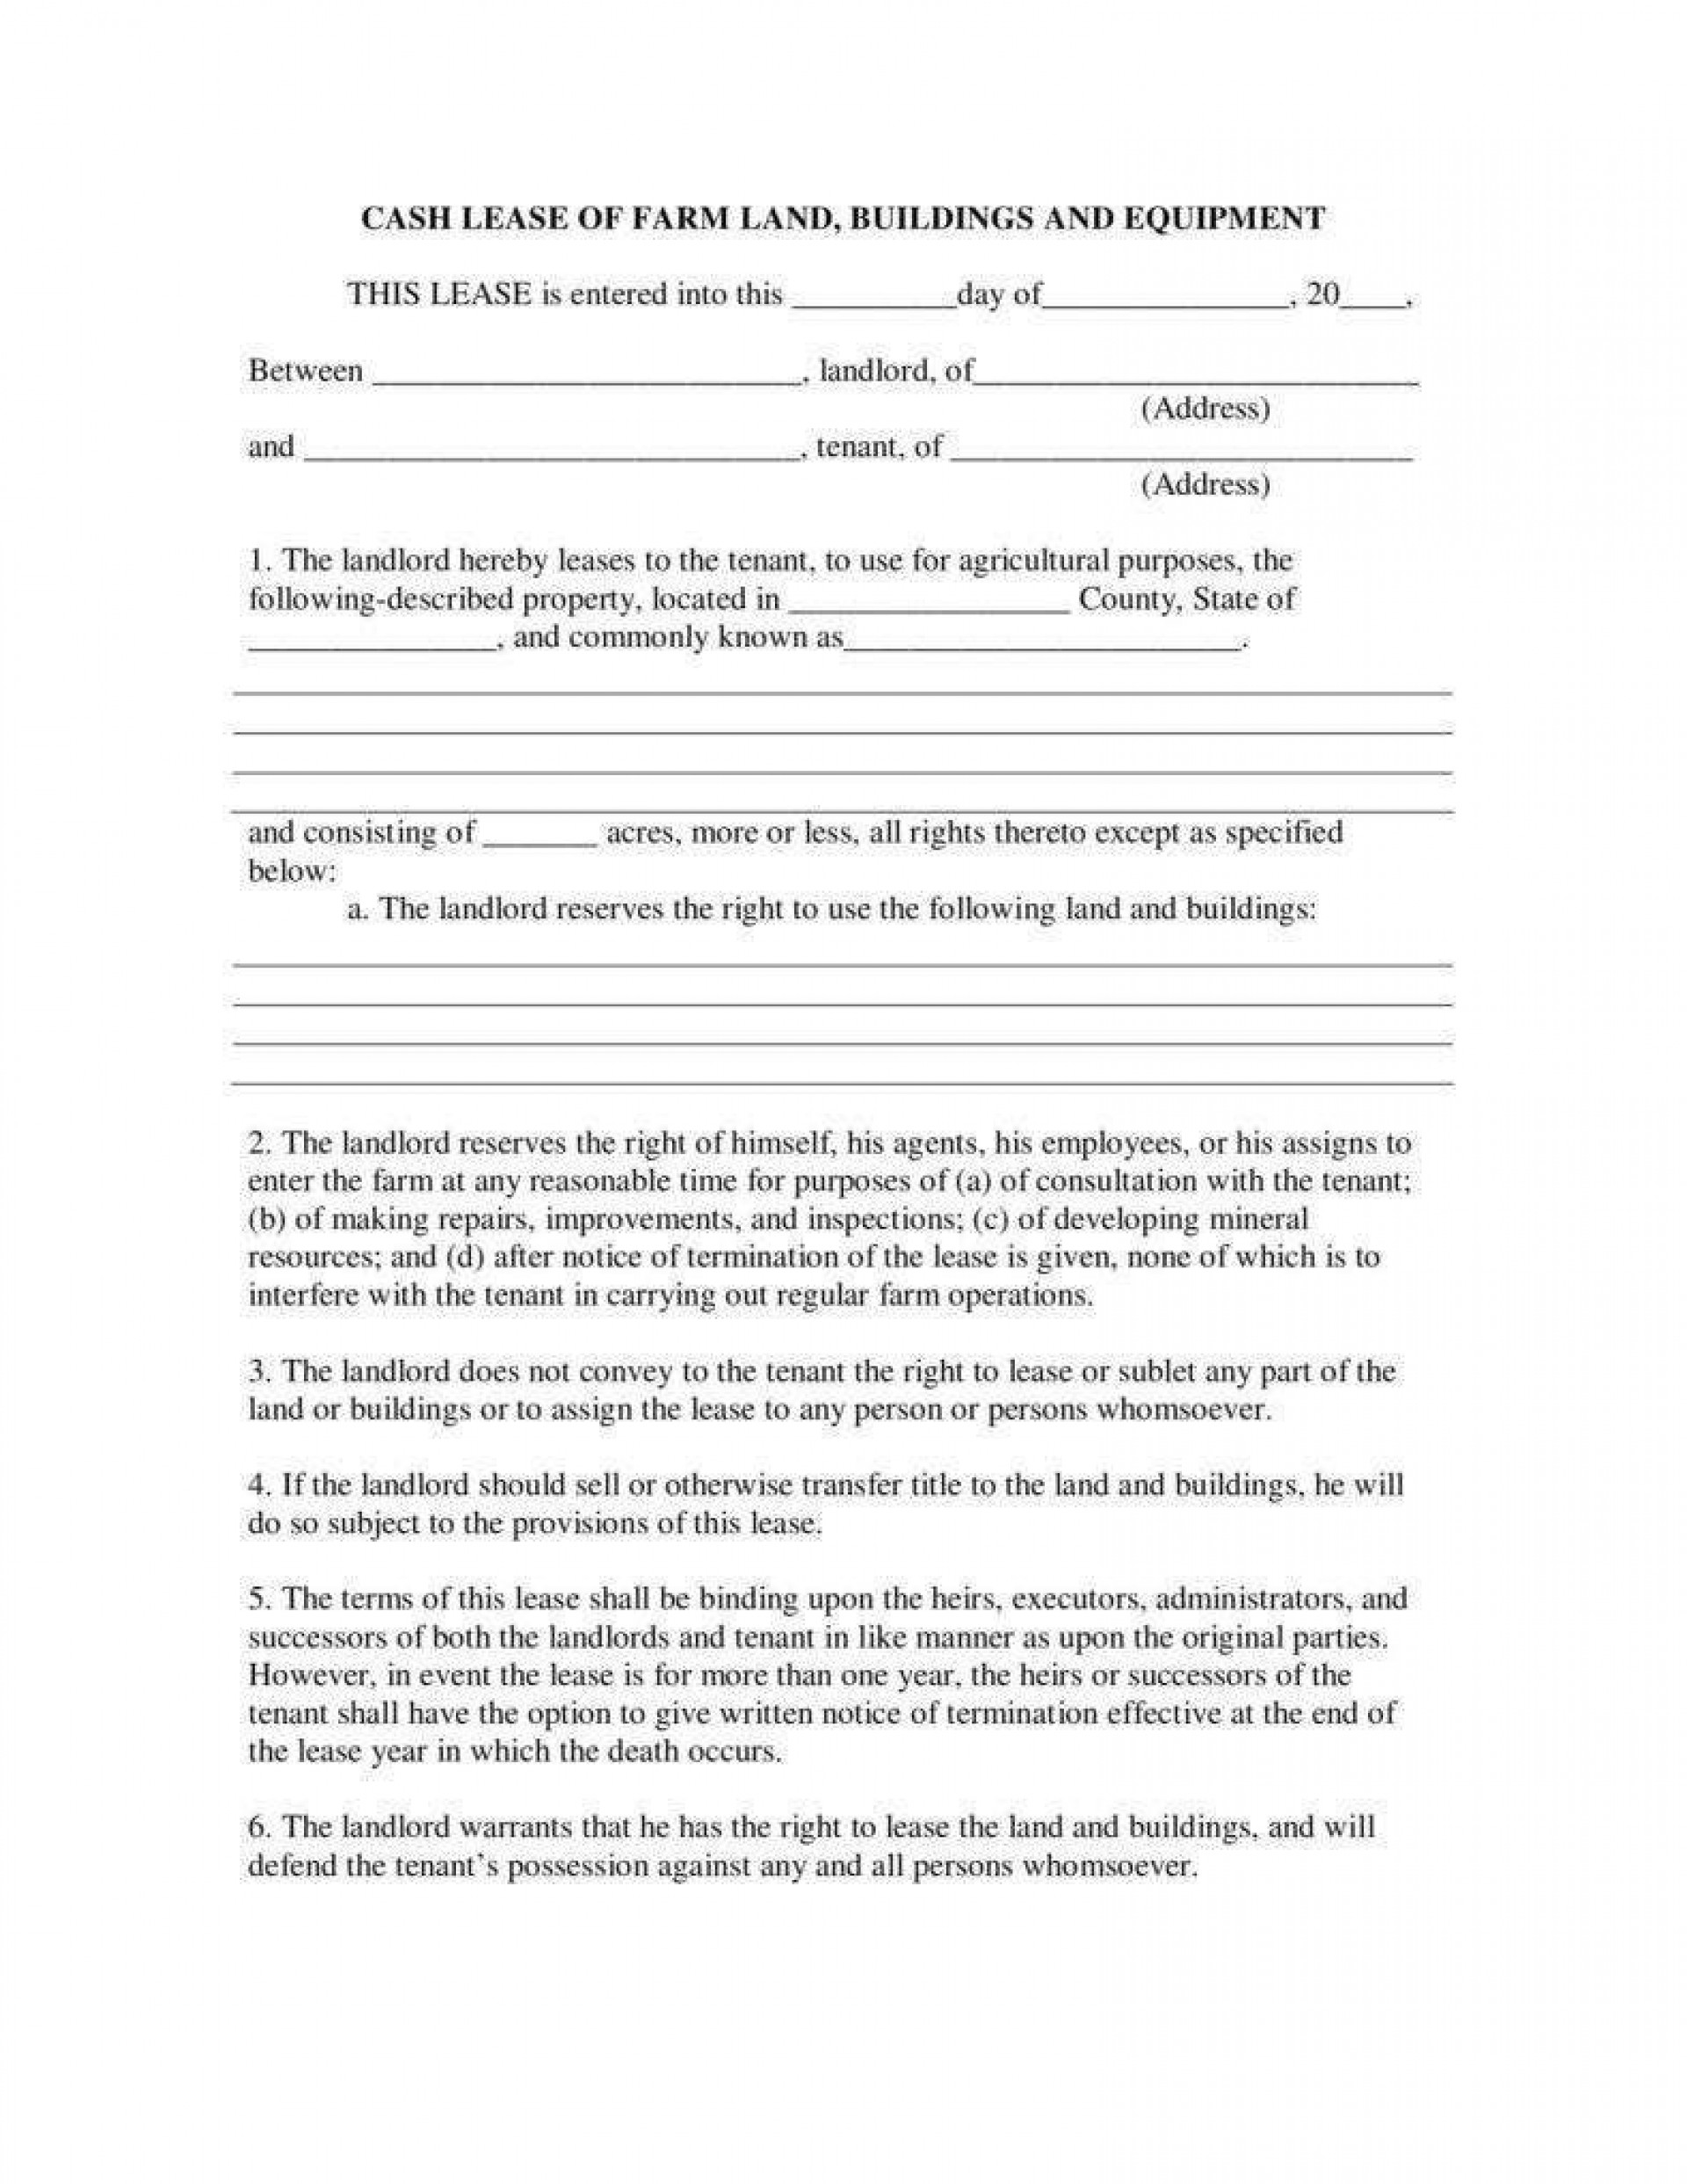 004 Top Rental Agreement Template Word South Africa Image  Room Doc Application Form1920